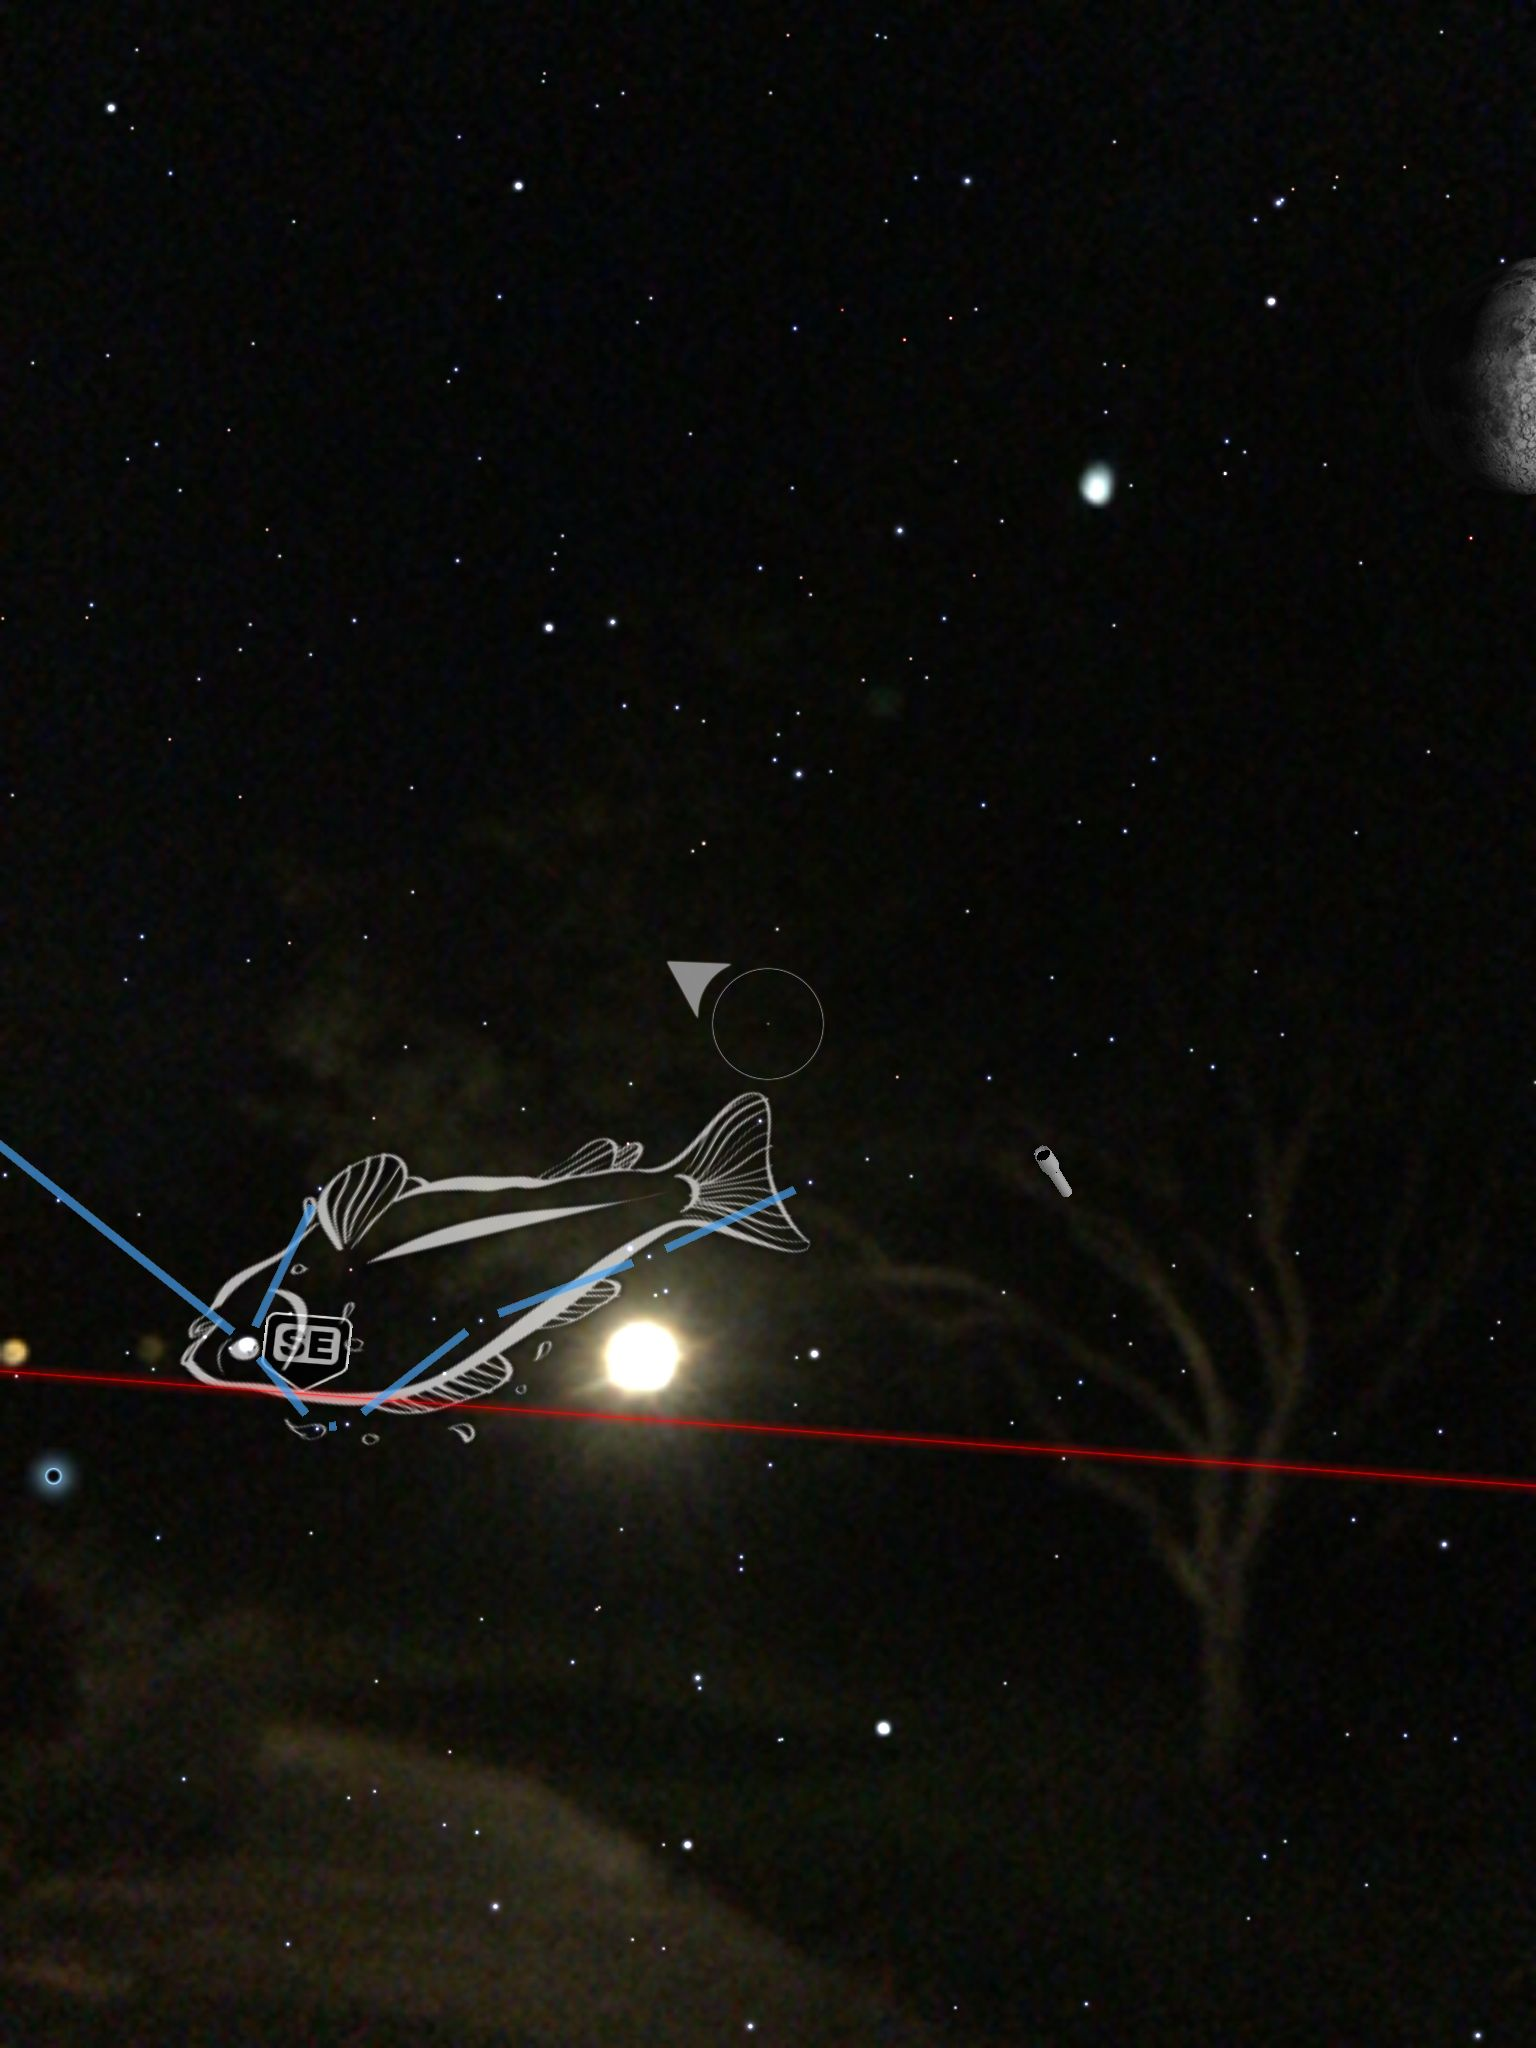 I just spotted 49 And in the sky with my SkyViewApp